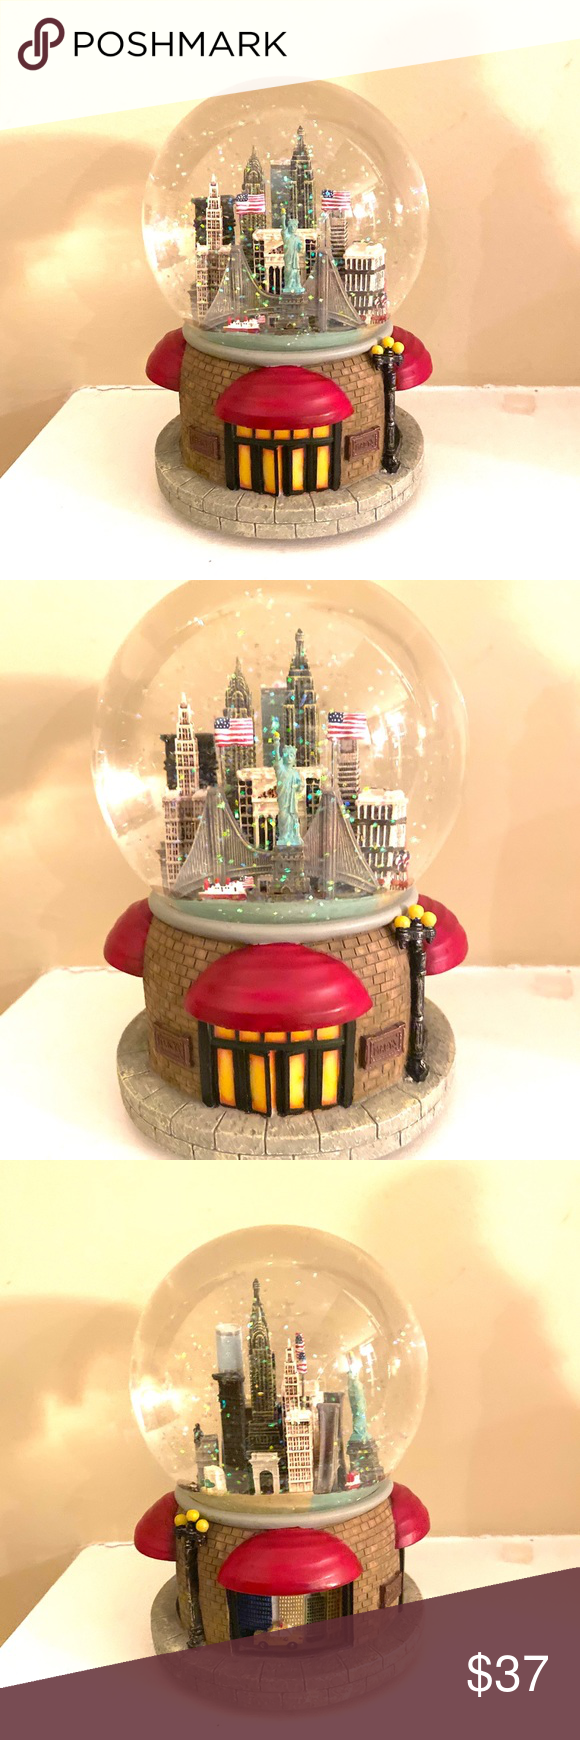 Christmas Musicals Nyc 2020 New York City Holiday Musical Snow Globe Christmas in 2020